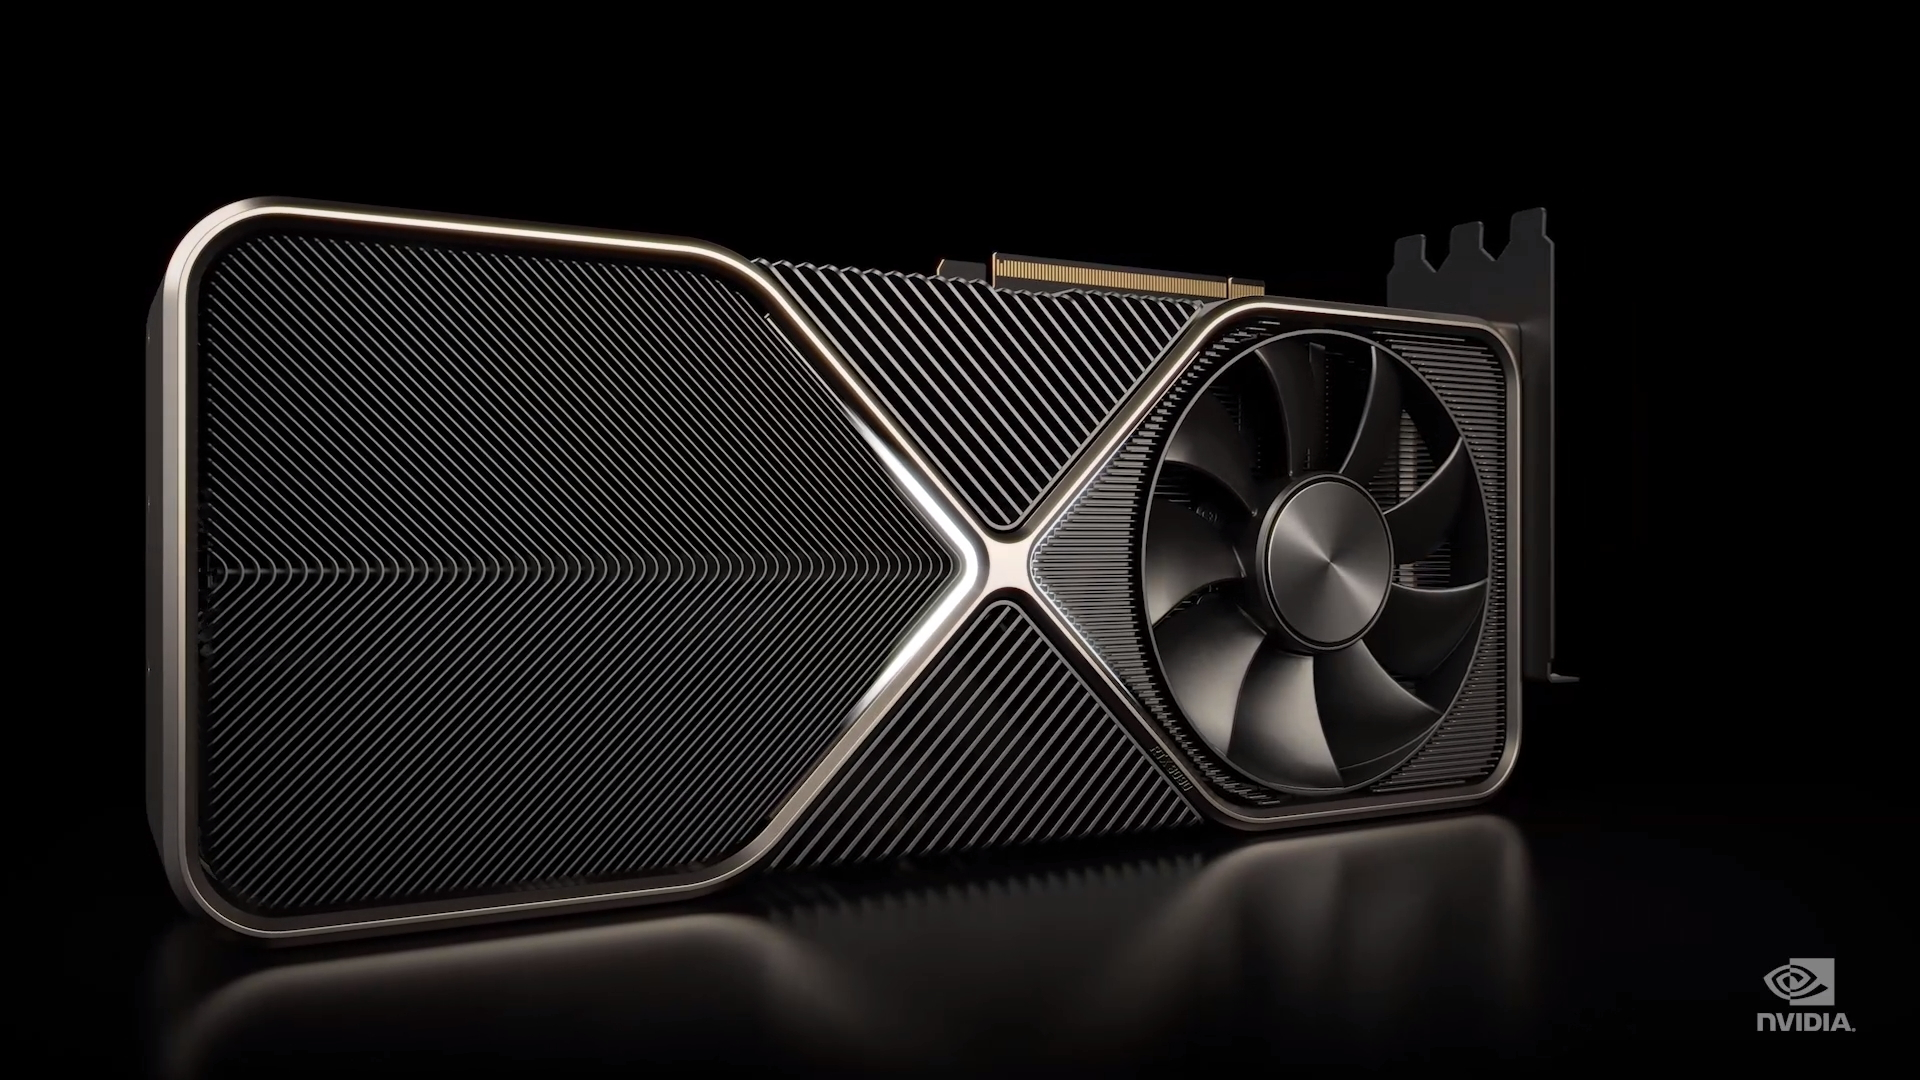 It's going to be very tough to get a Nvidia RTX 30 card before next year screenshot